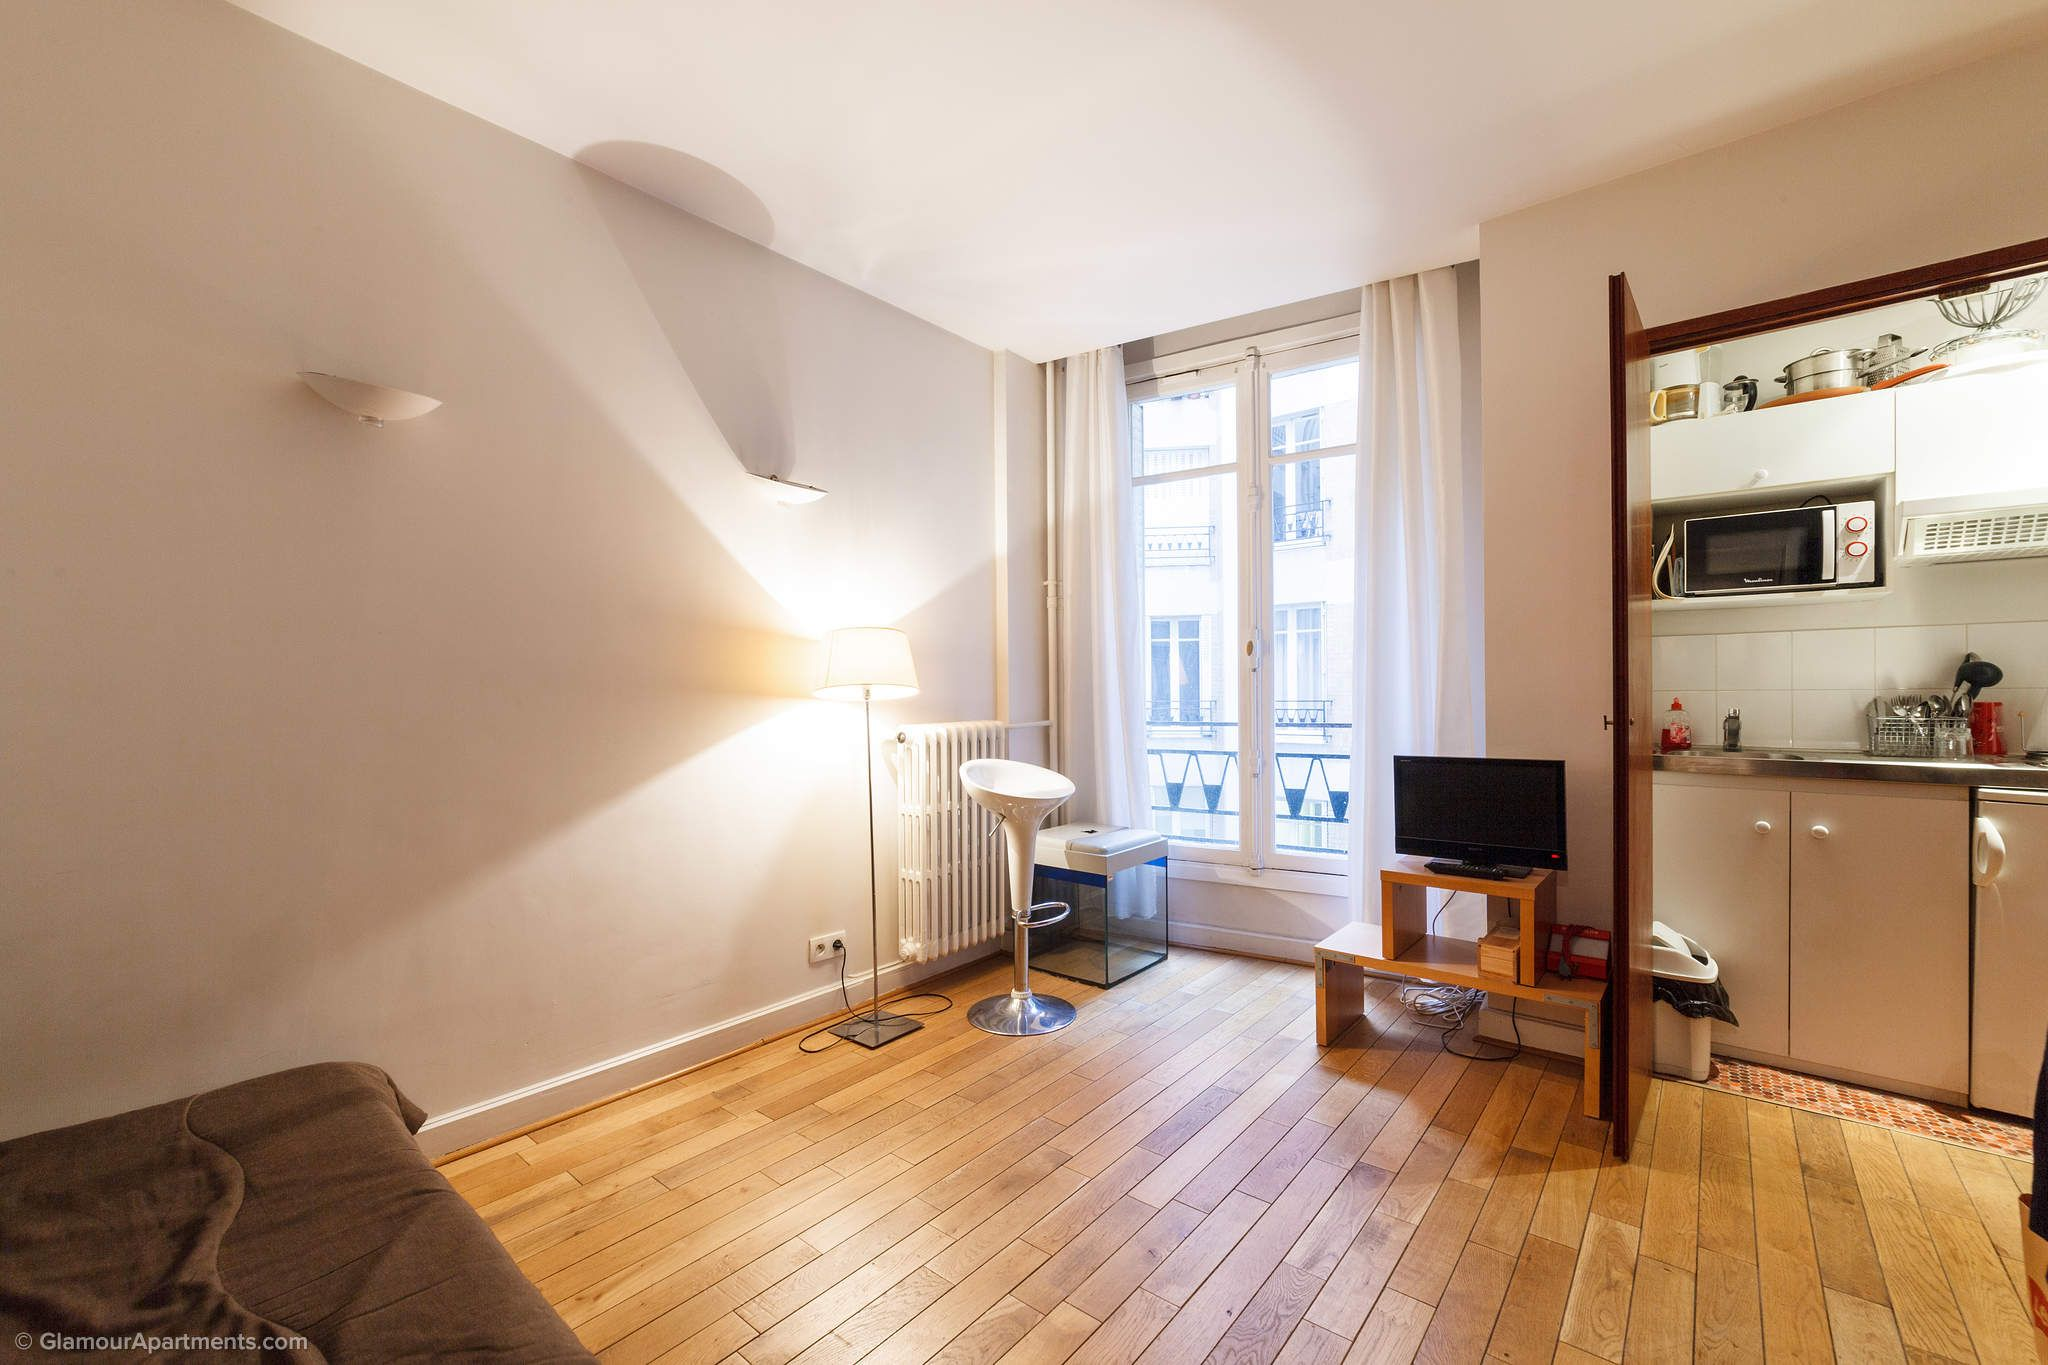 Furnished Studio Apartment For A Long Term Rent On Avenue Pierre 1er De Serbie In The 16th District Of Paris Comfortable Compact Flat S An